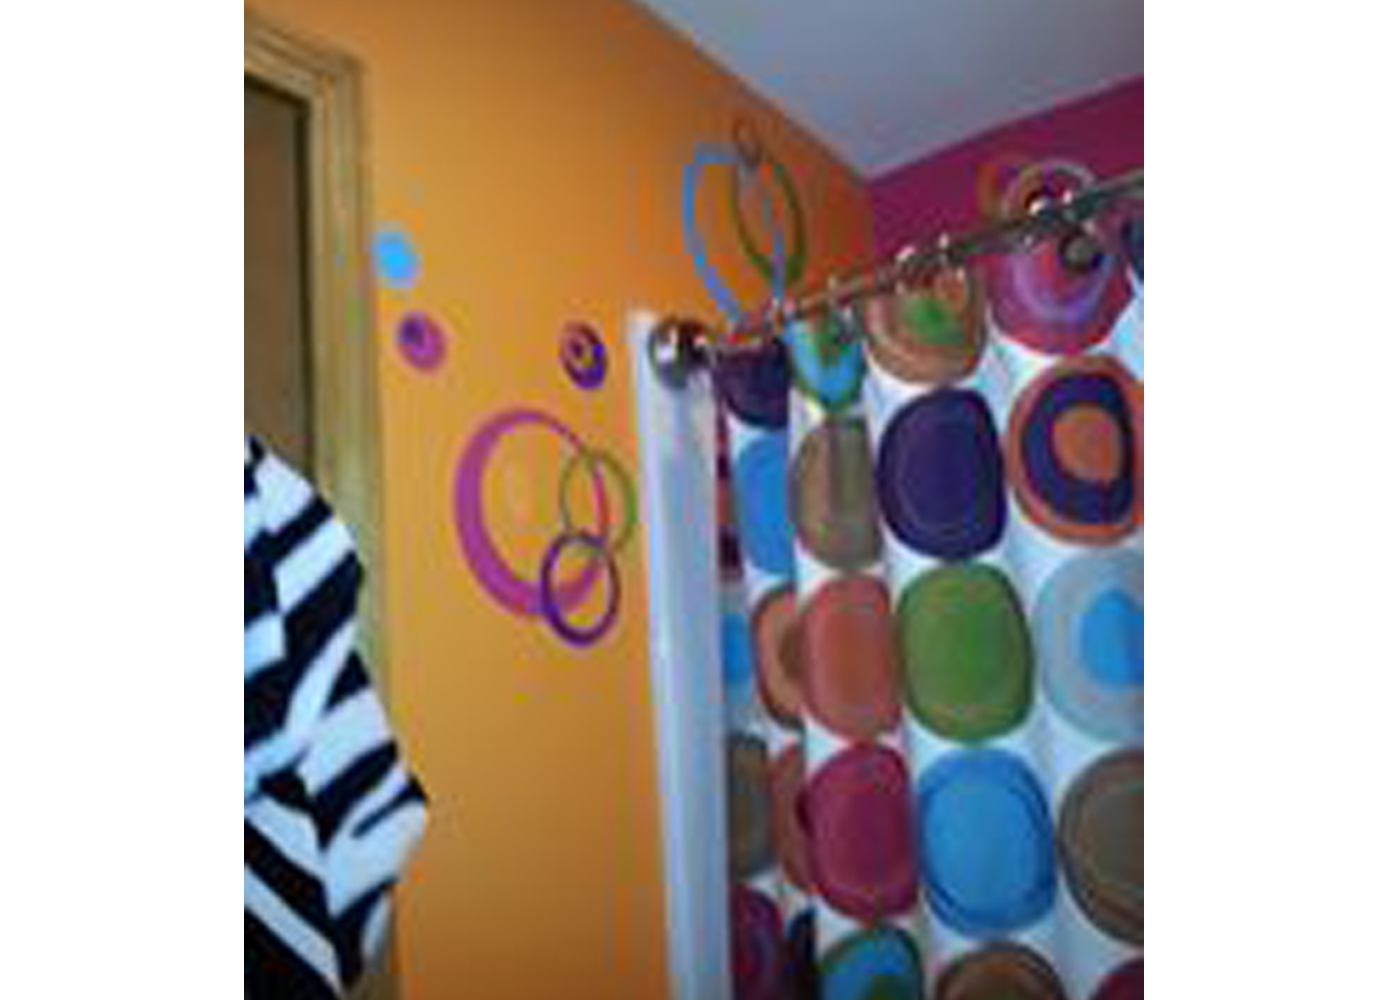 bathroom-decor-with-wall-decal-circle-stickers.jpg